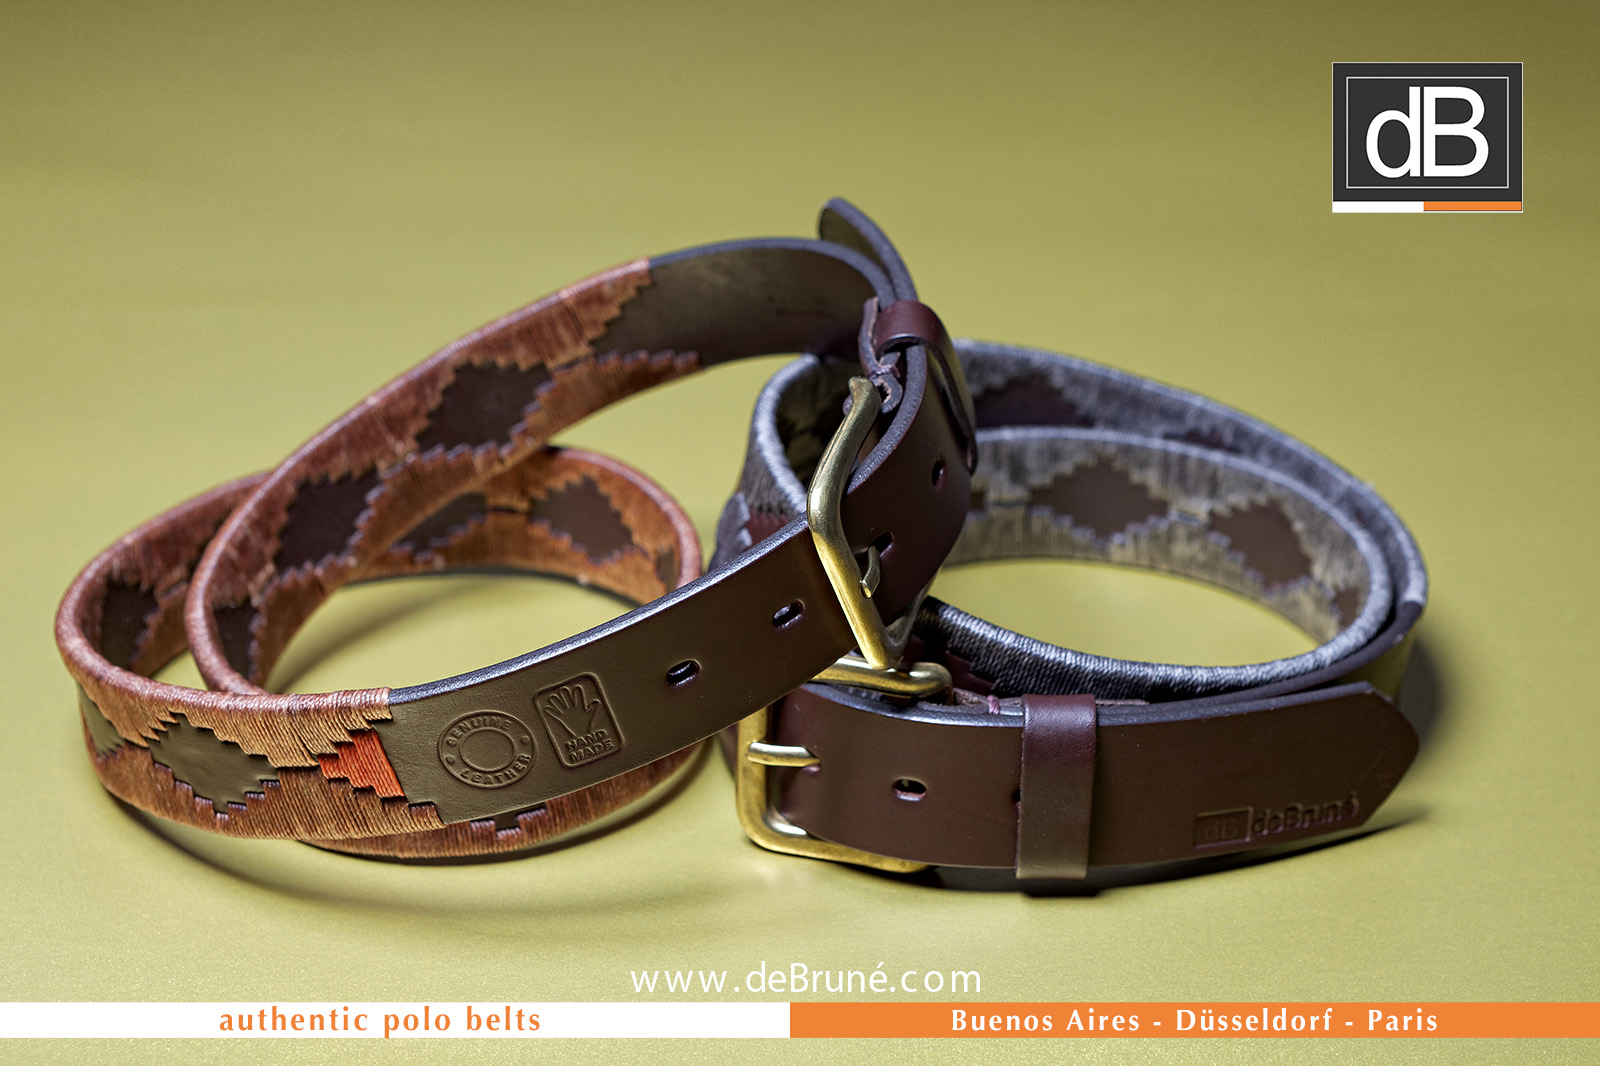 the ORIGINAL Polo Belt - the real one